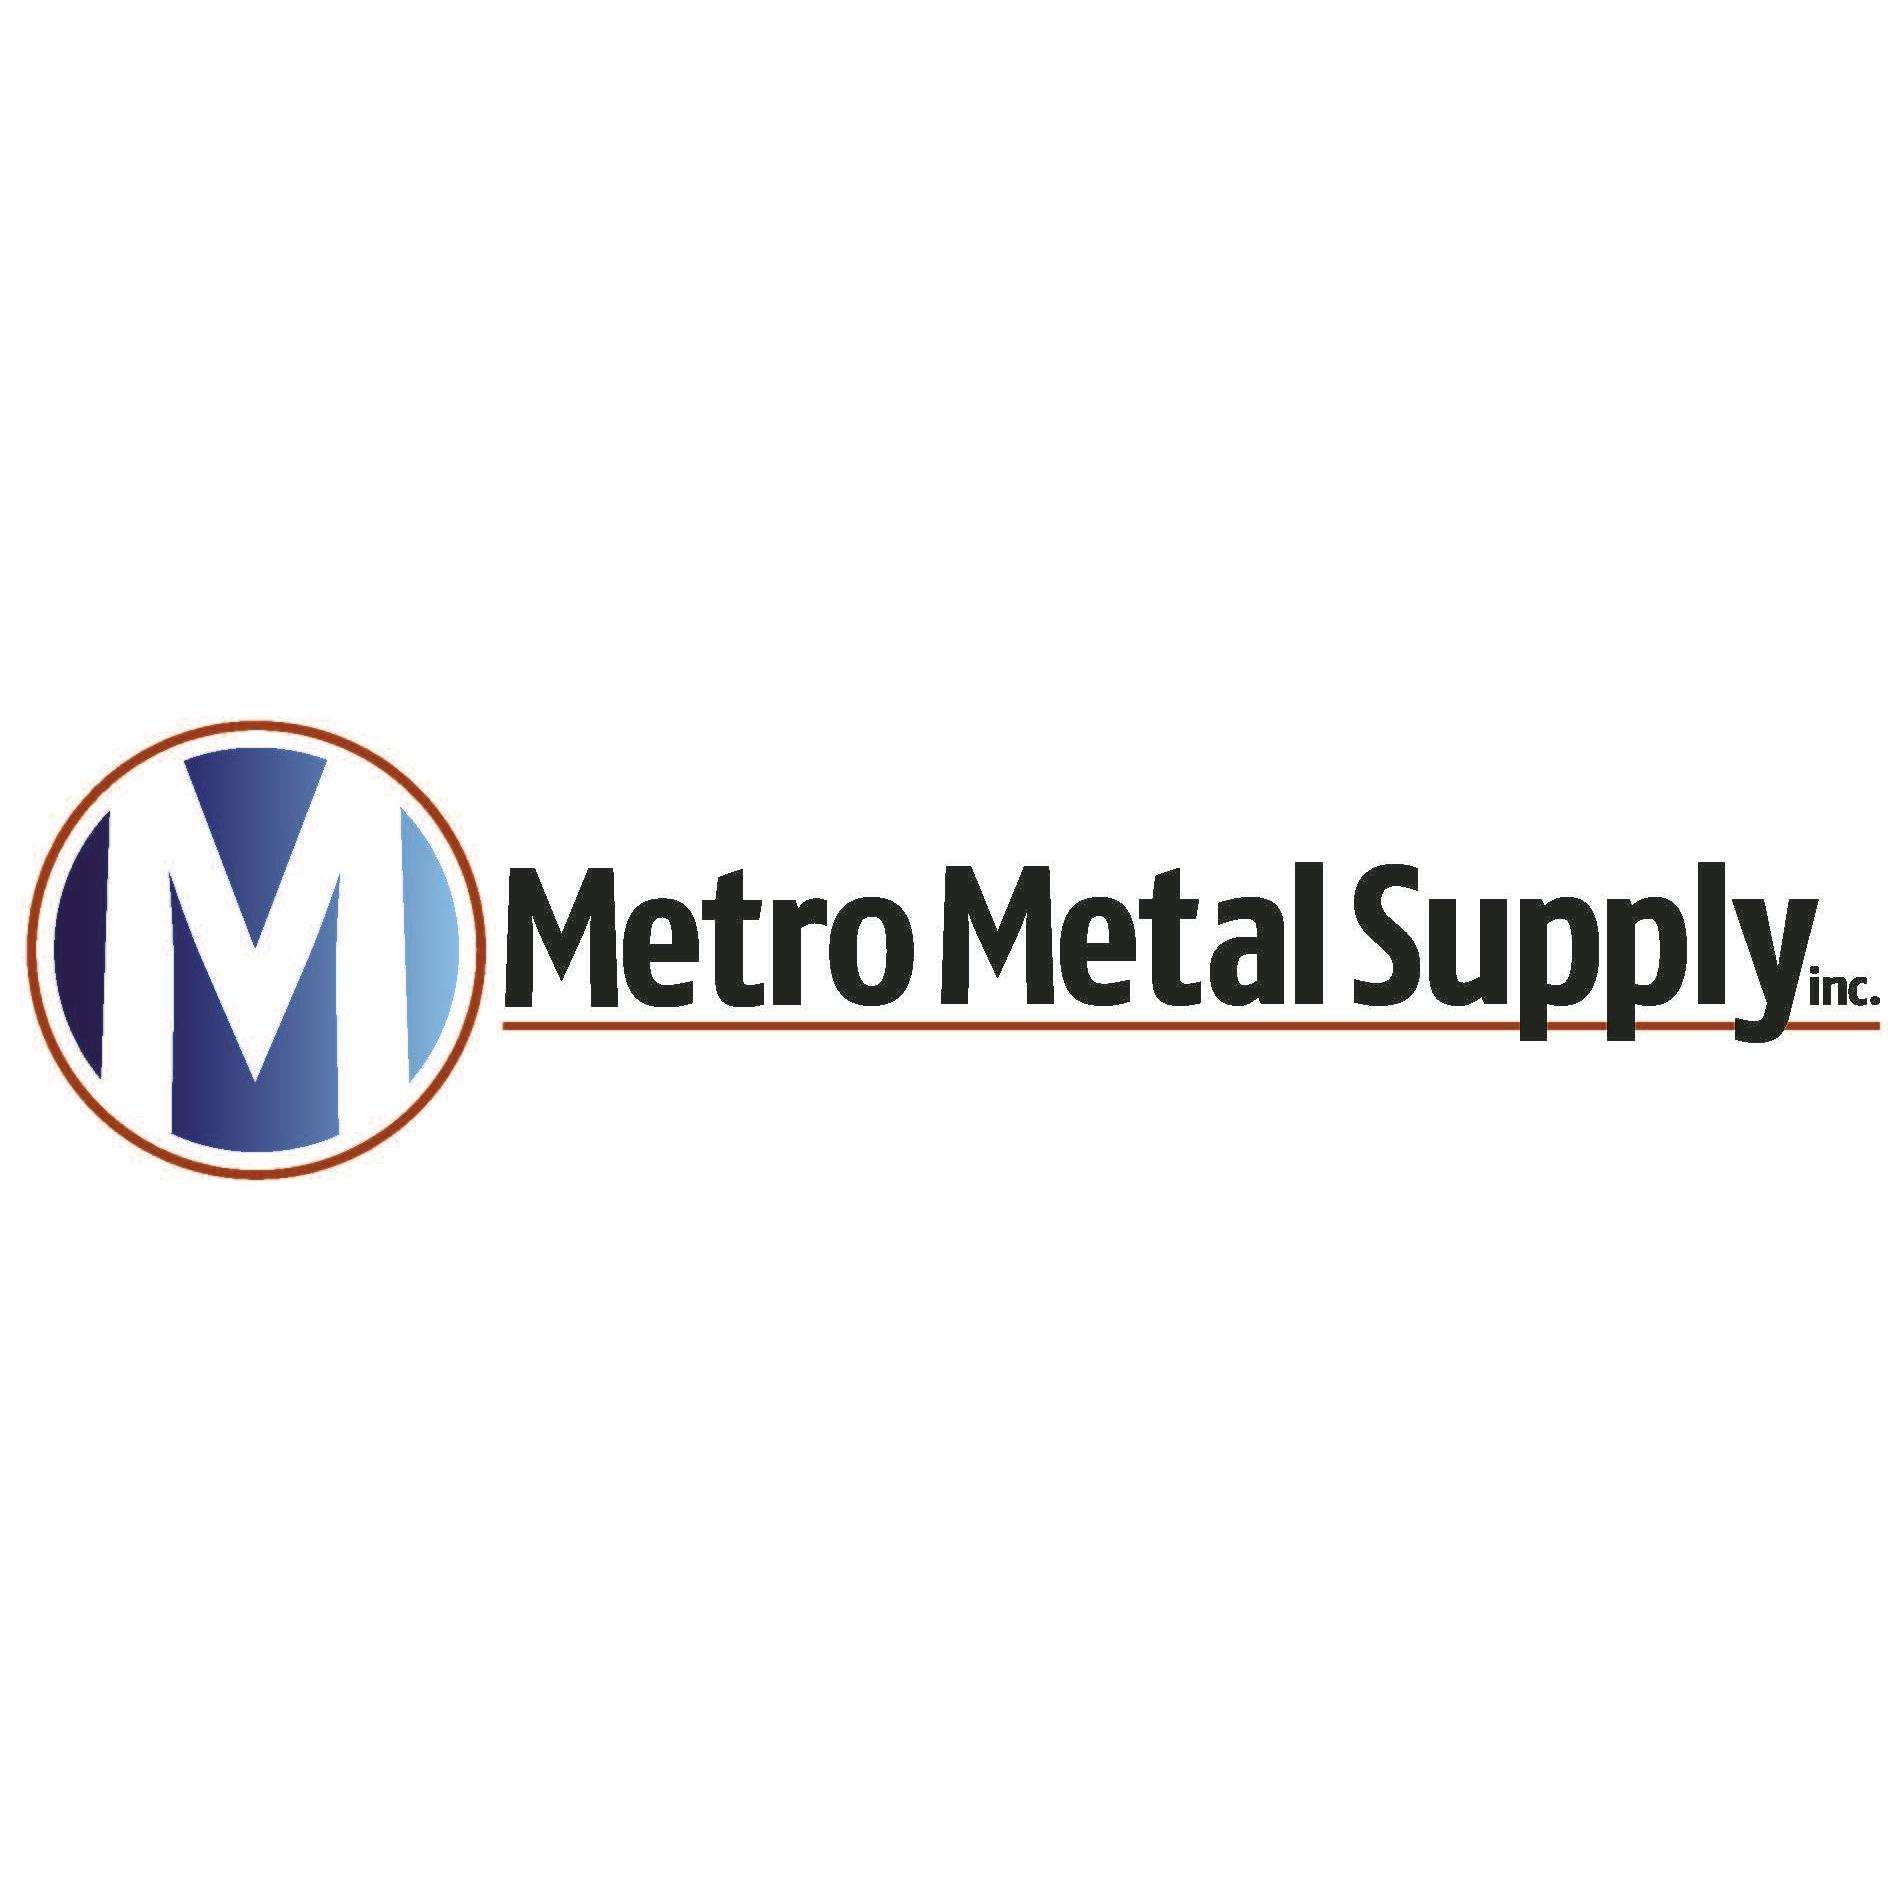 Metro Metal Supply